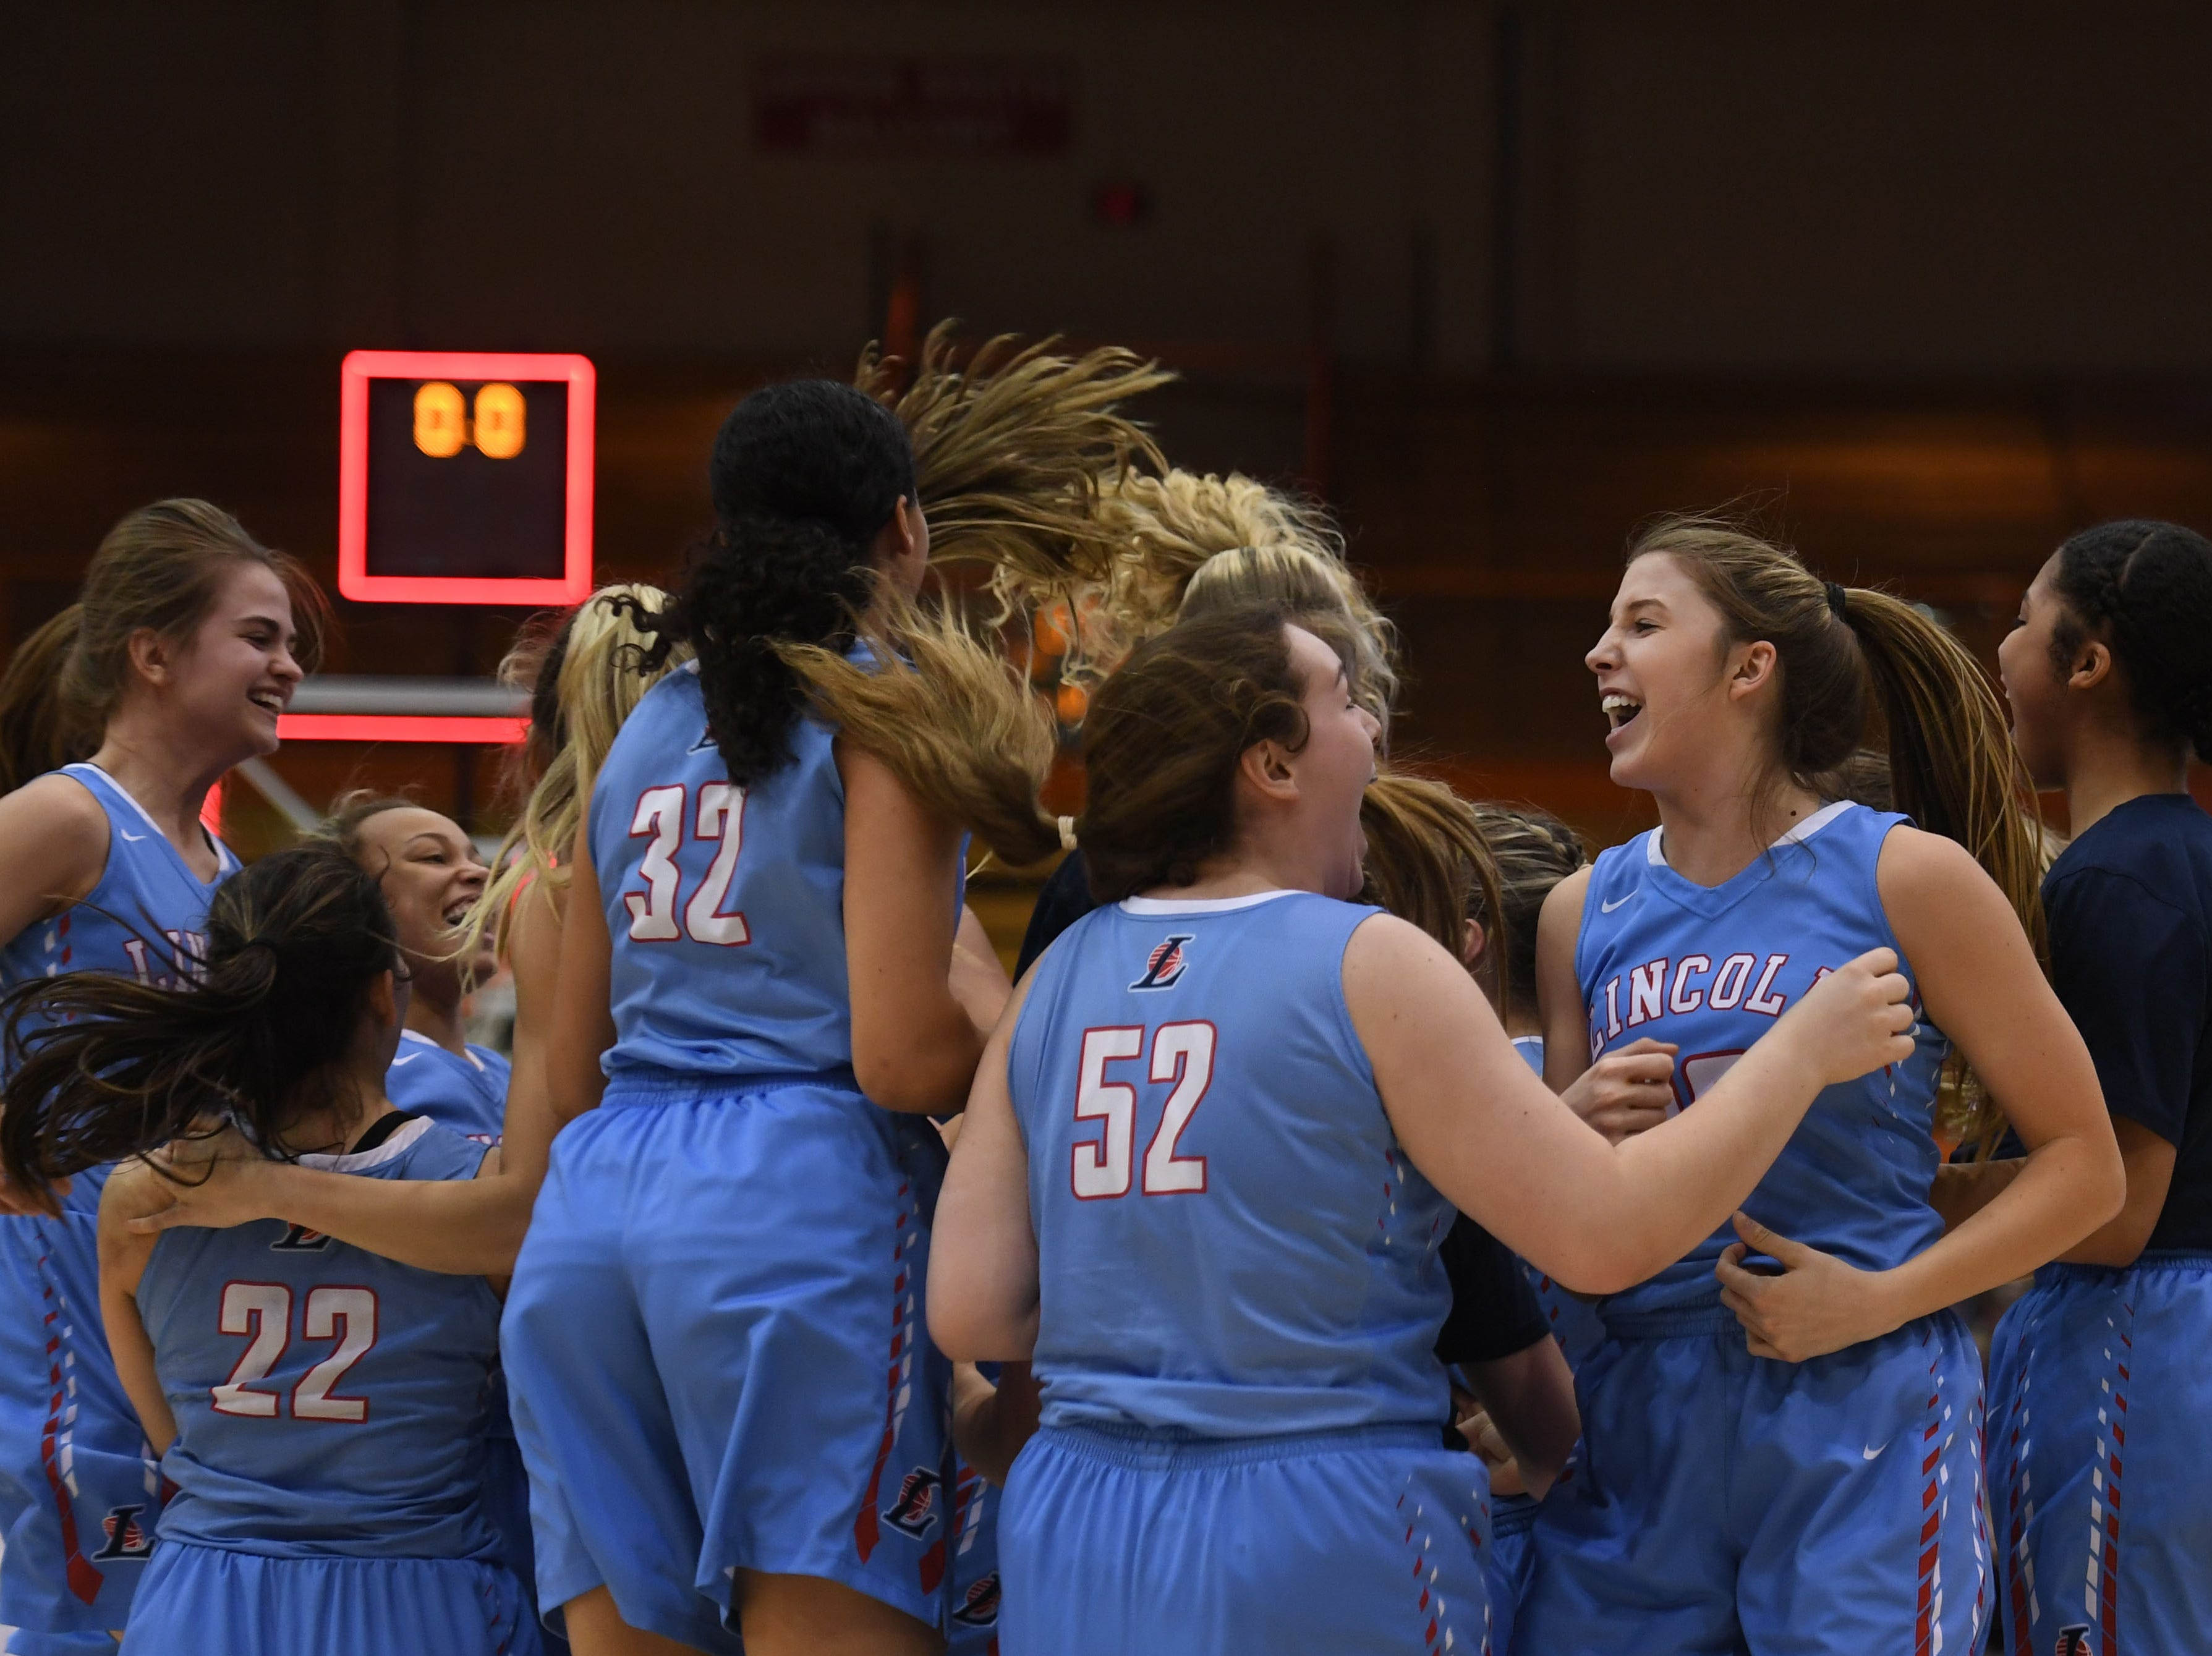 Lincoln celebrates their win against Harrisburg in the Class AA semifinals Thursday, March 15, in Rapid City.